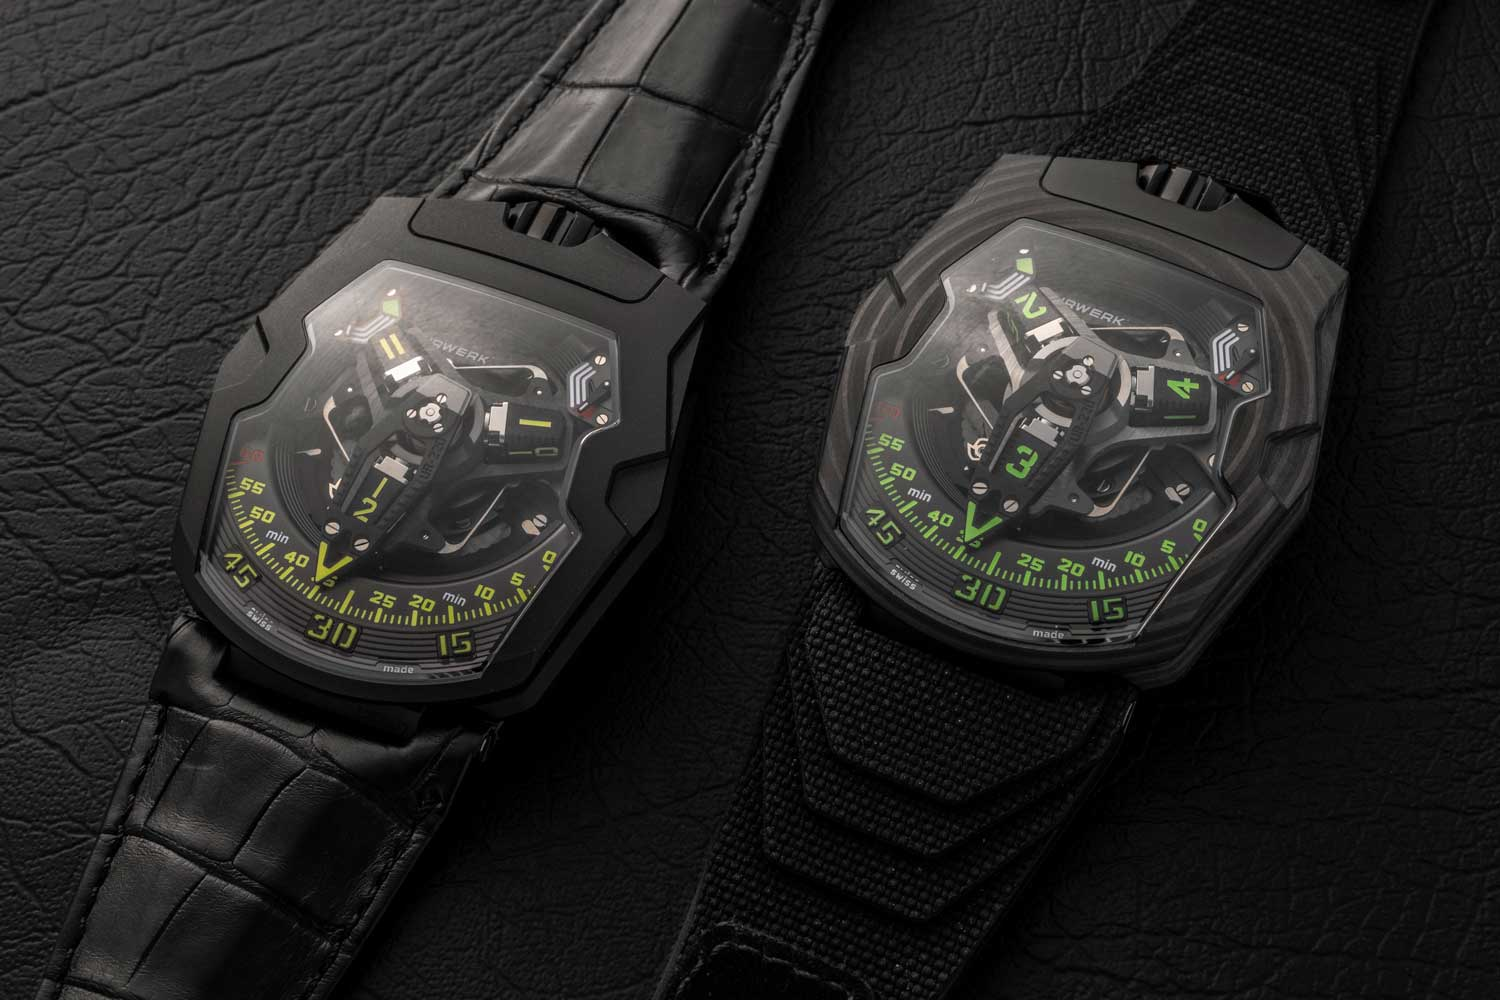 (L-R) The UR-220 All Black limited edition of 25 pieces and the UR-220 Falcon Project